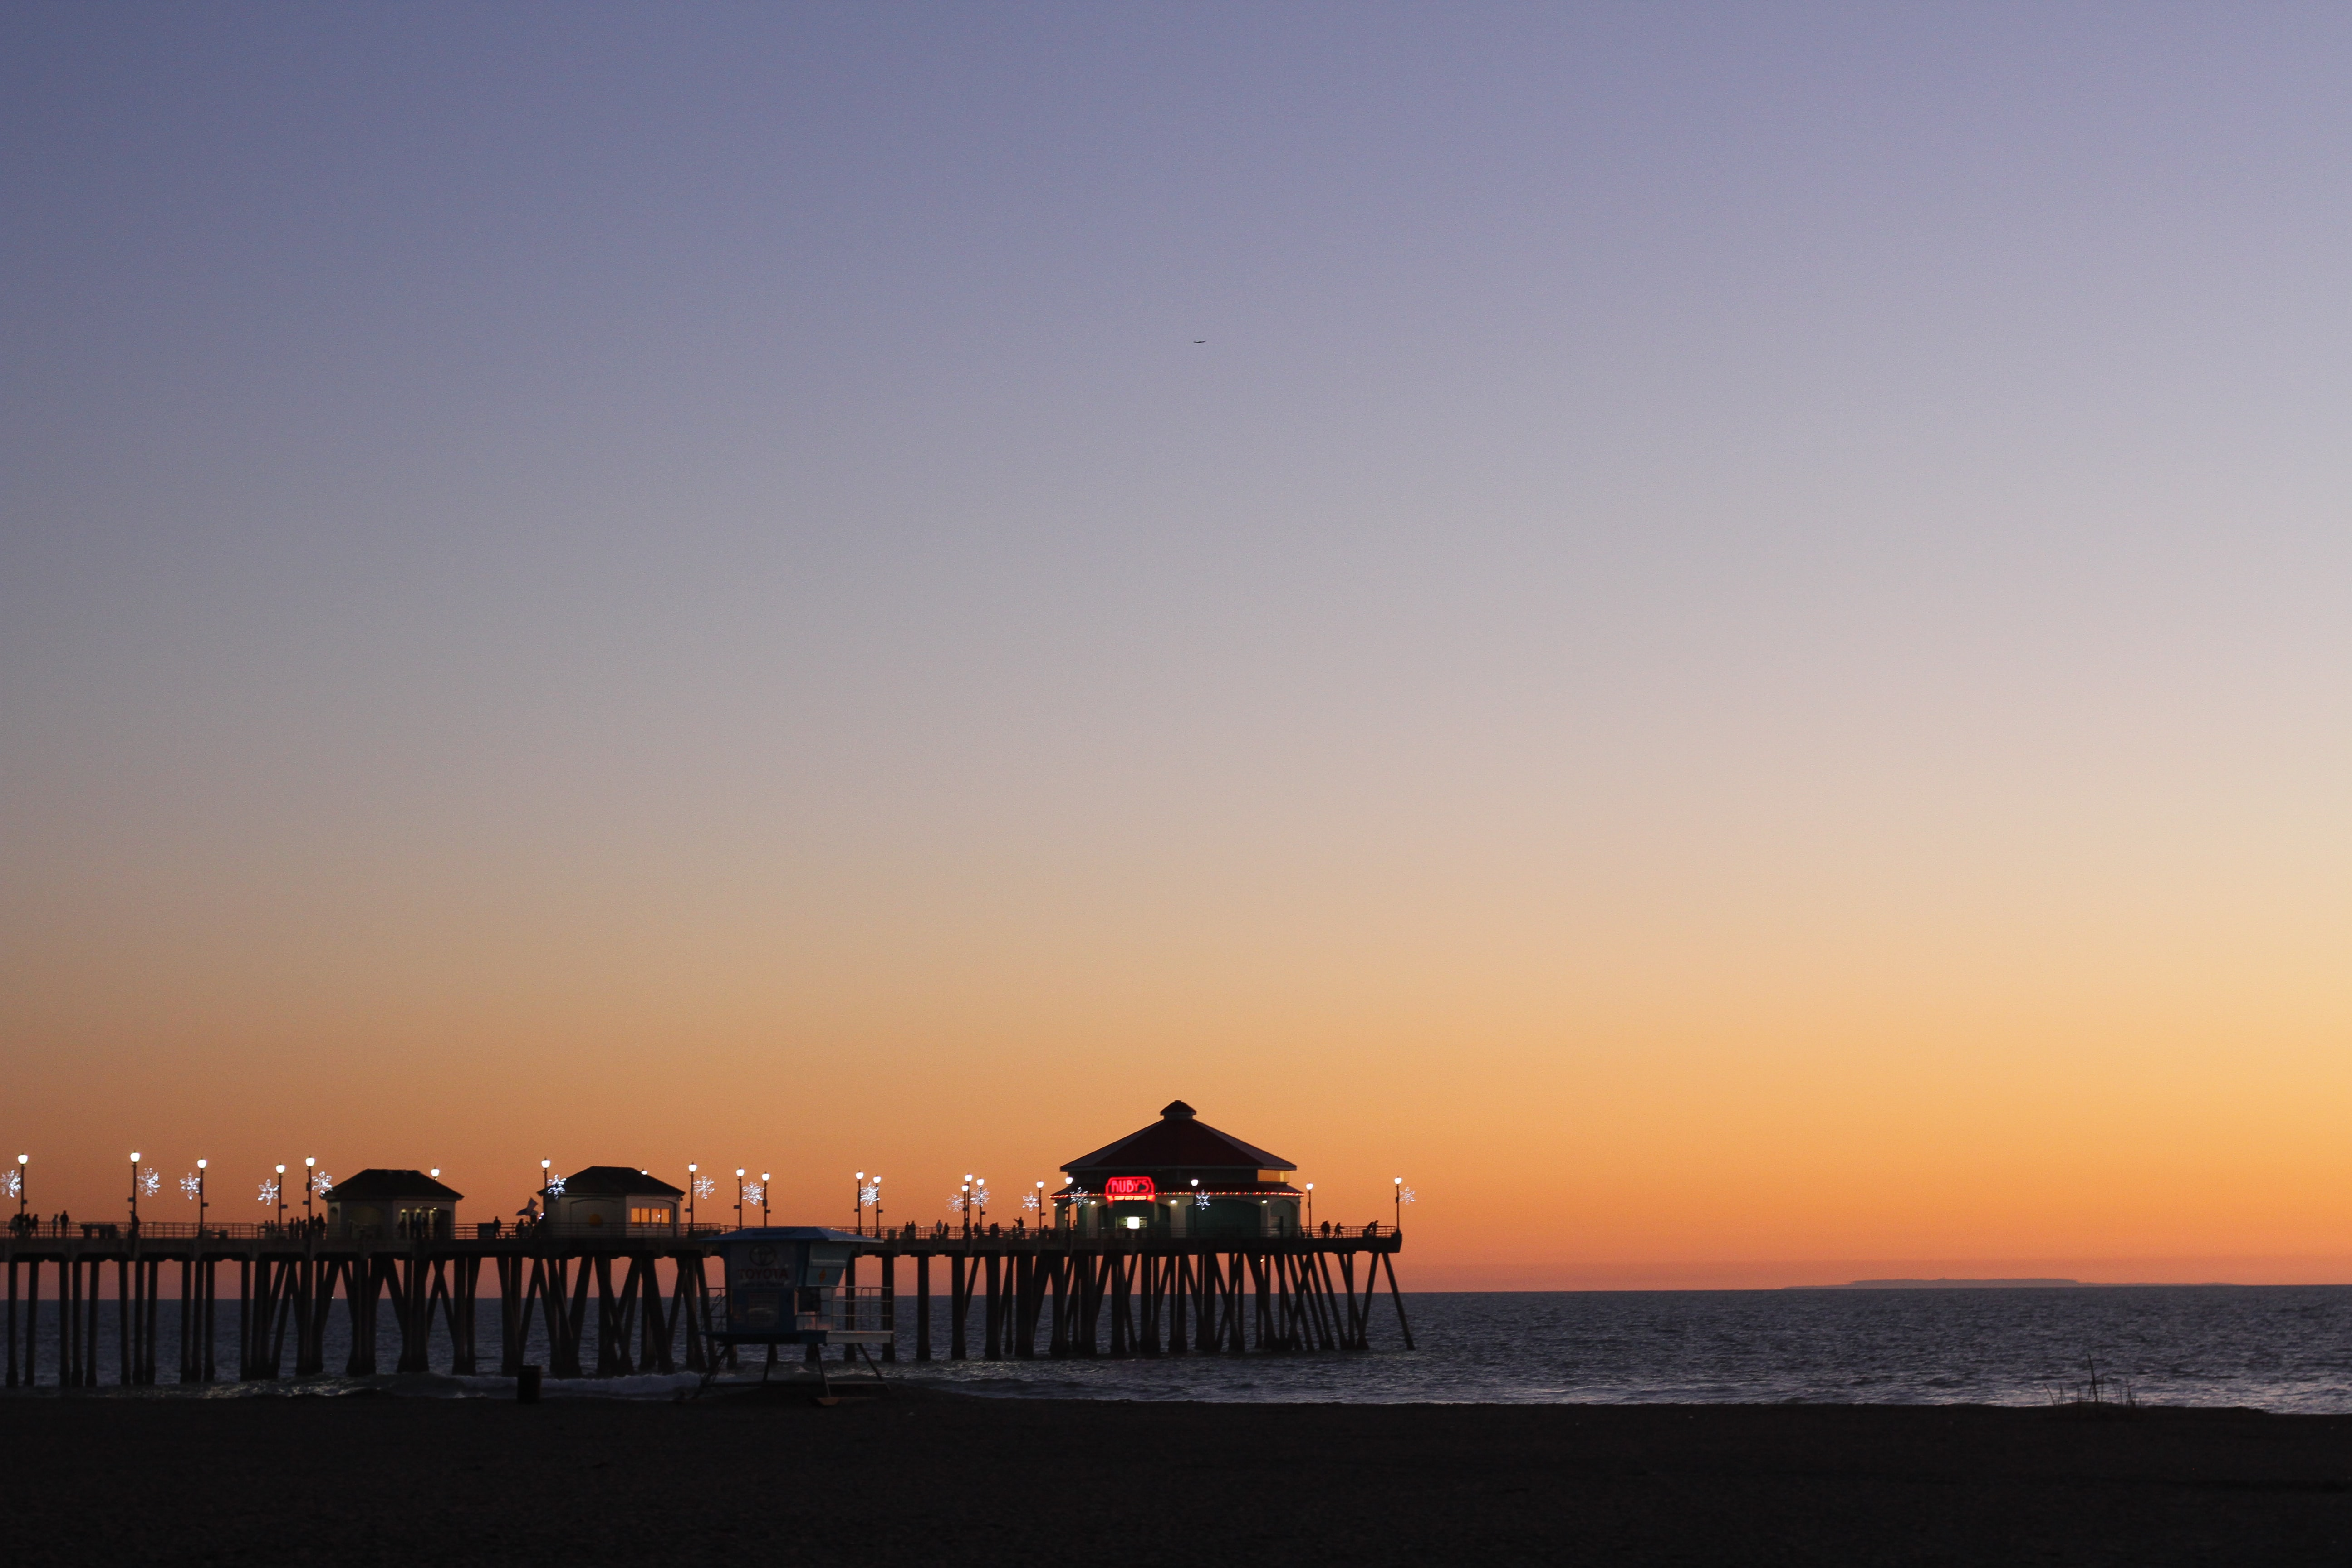 The sun setting behind the twinkling lights of the Huntington Beach pier, California